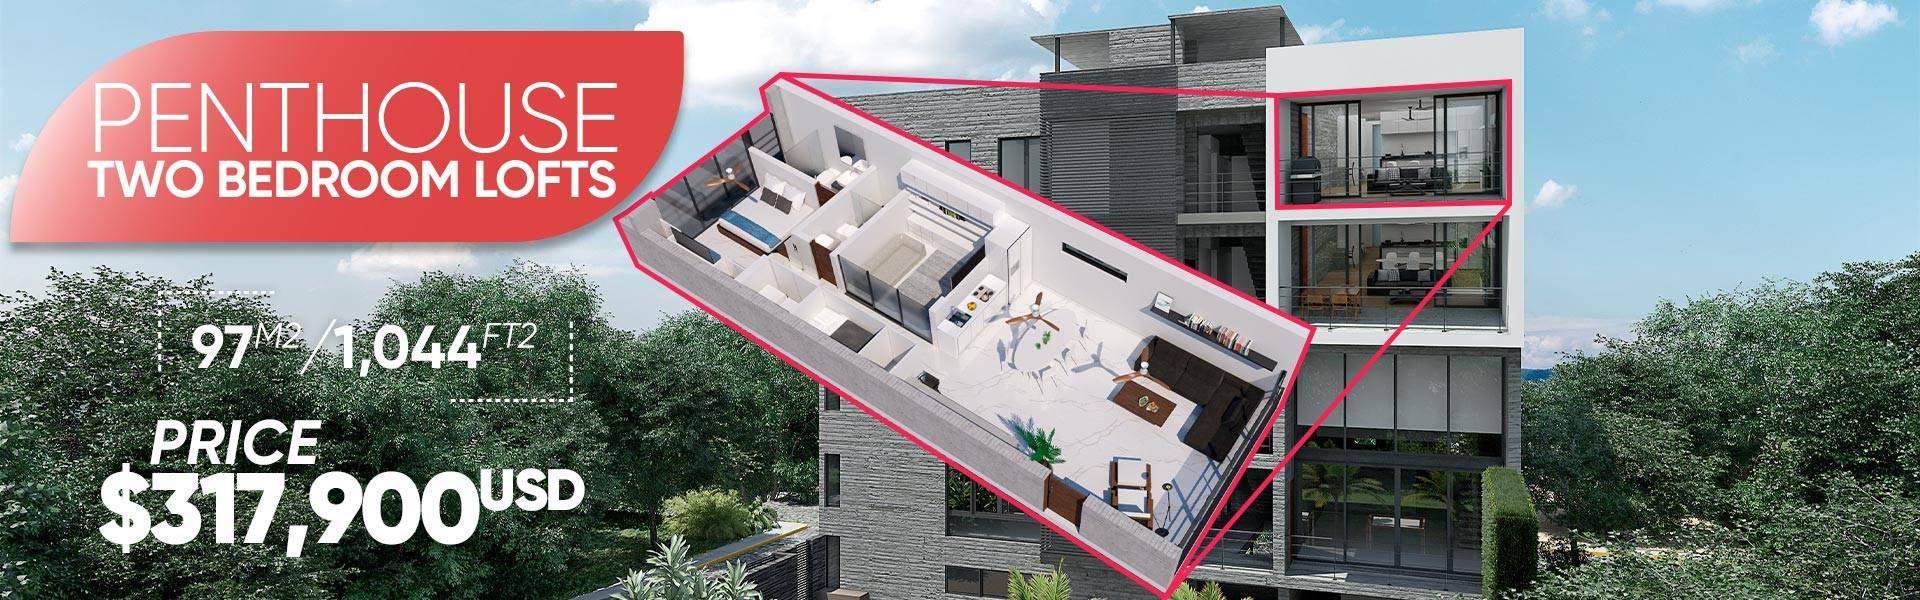 Becerias condos for sale full ownership